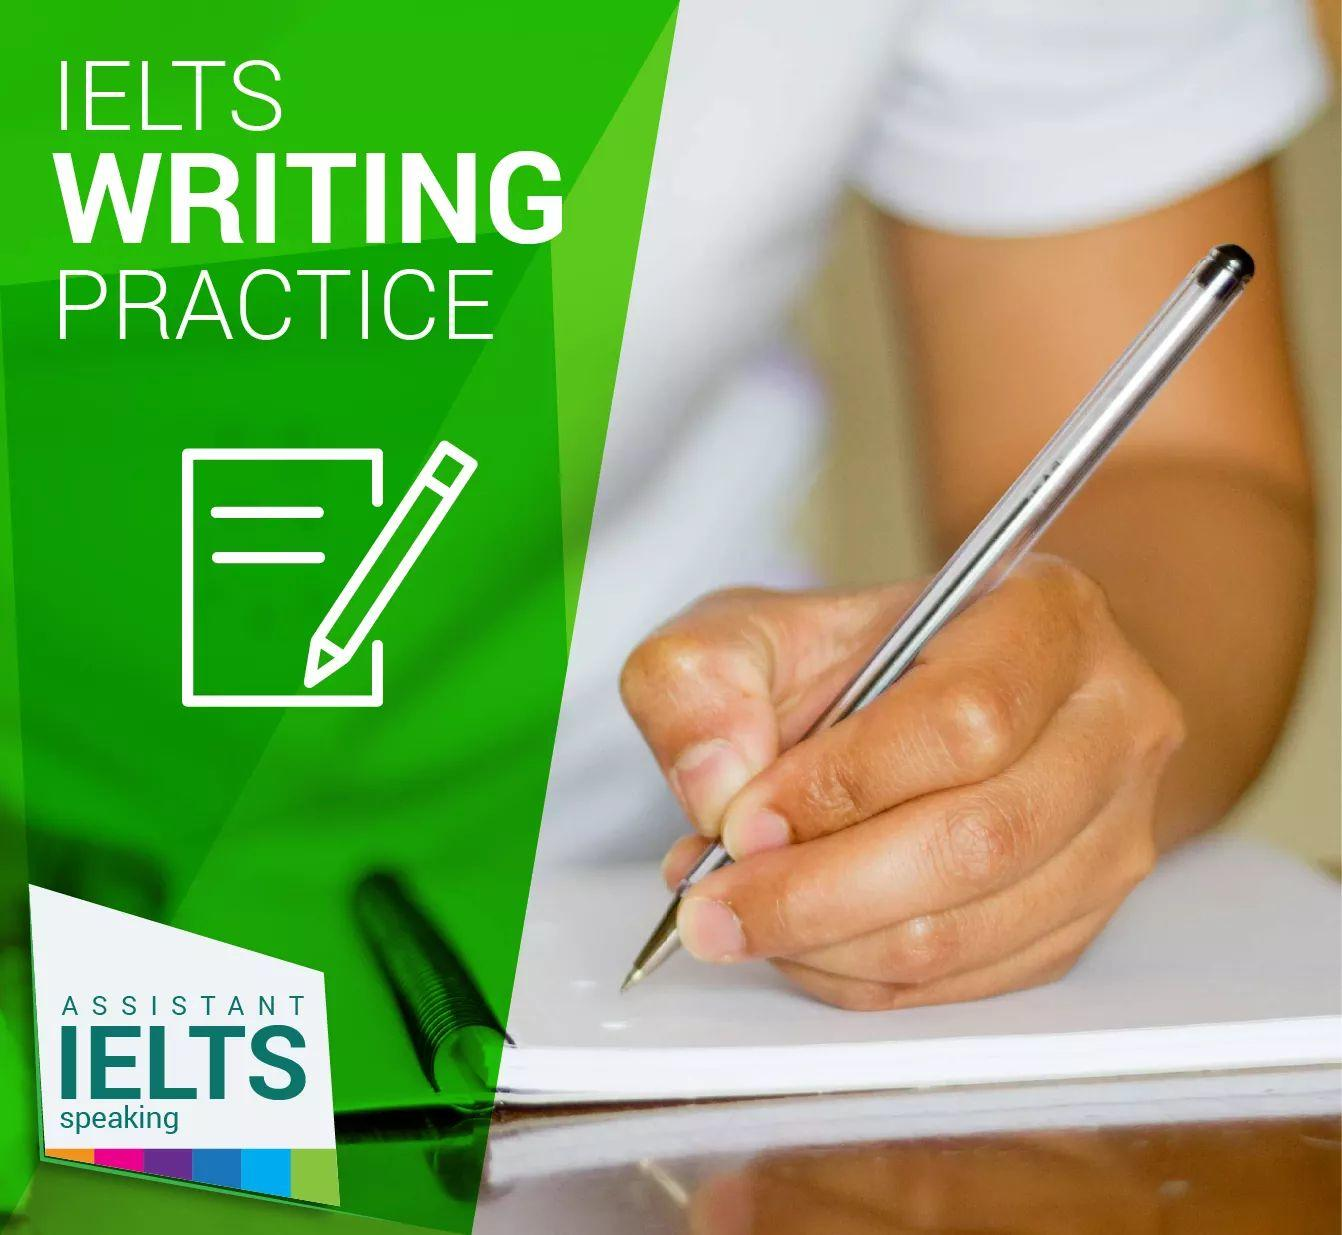 ielts essay question Ielts band 9 essay: immigration here you can find advice how to structure ielts essay and ielts model answer for immigration topic question type: reasons and consequences.